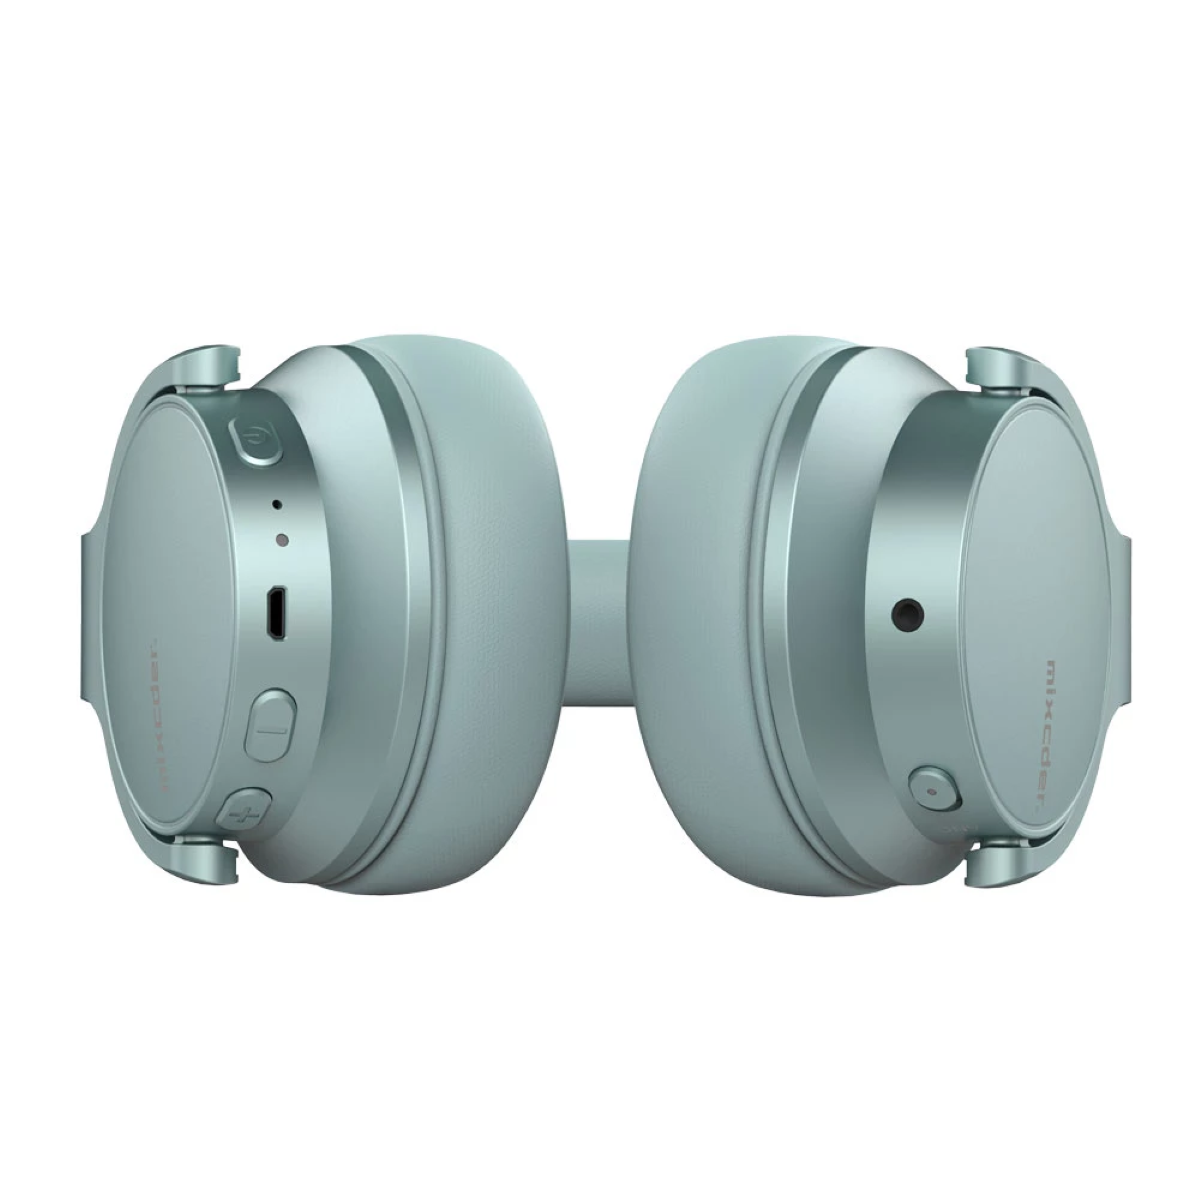 Mixcder E7 Wireless ANC Headphones - Quick-Access Buttons, Micro-USB Recharging Port and 3.5mm Audio Port